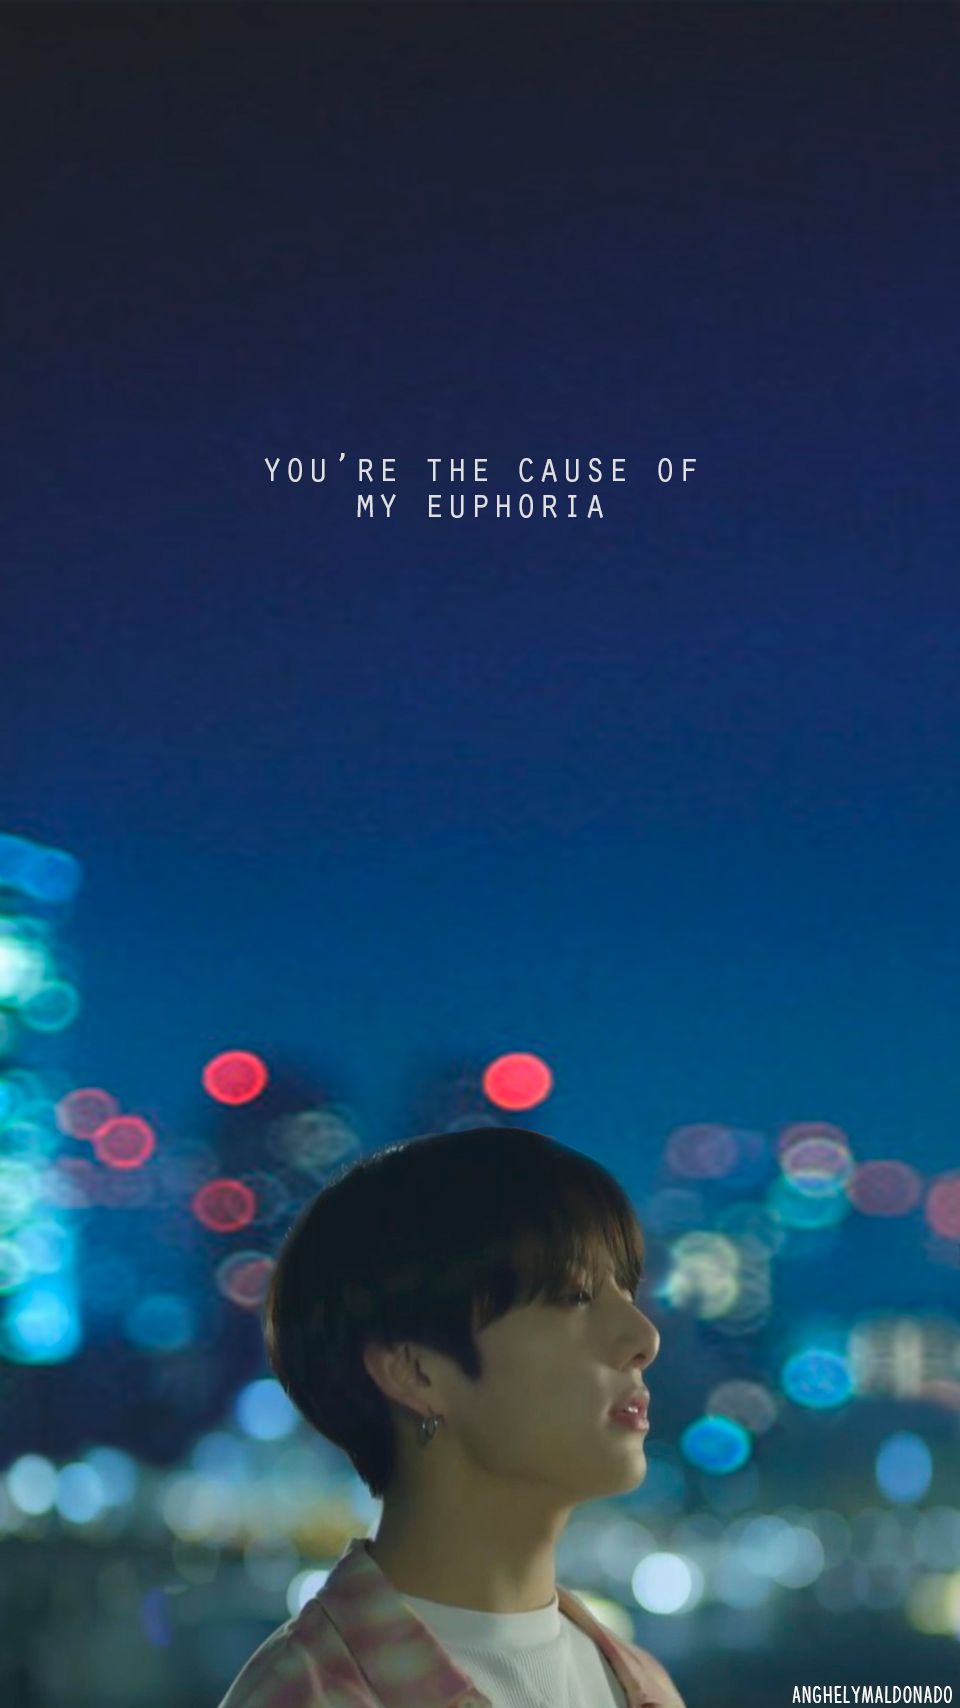 Jungkook Wallpaper Euphoria Lyrics Bangtaneu Pinterest Bts